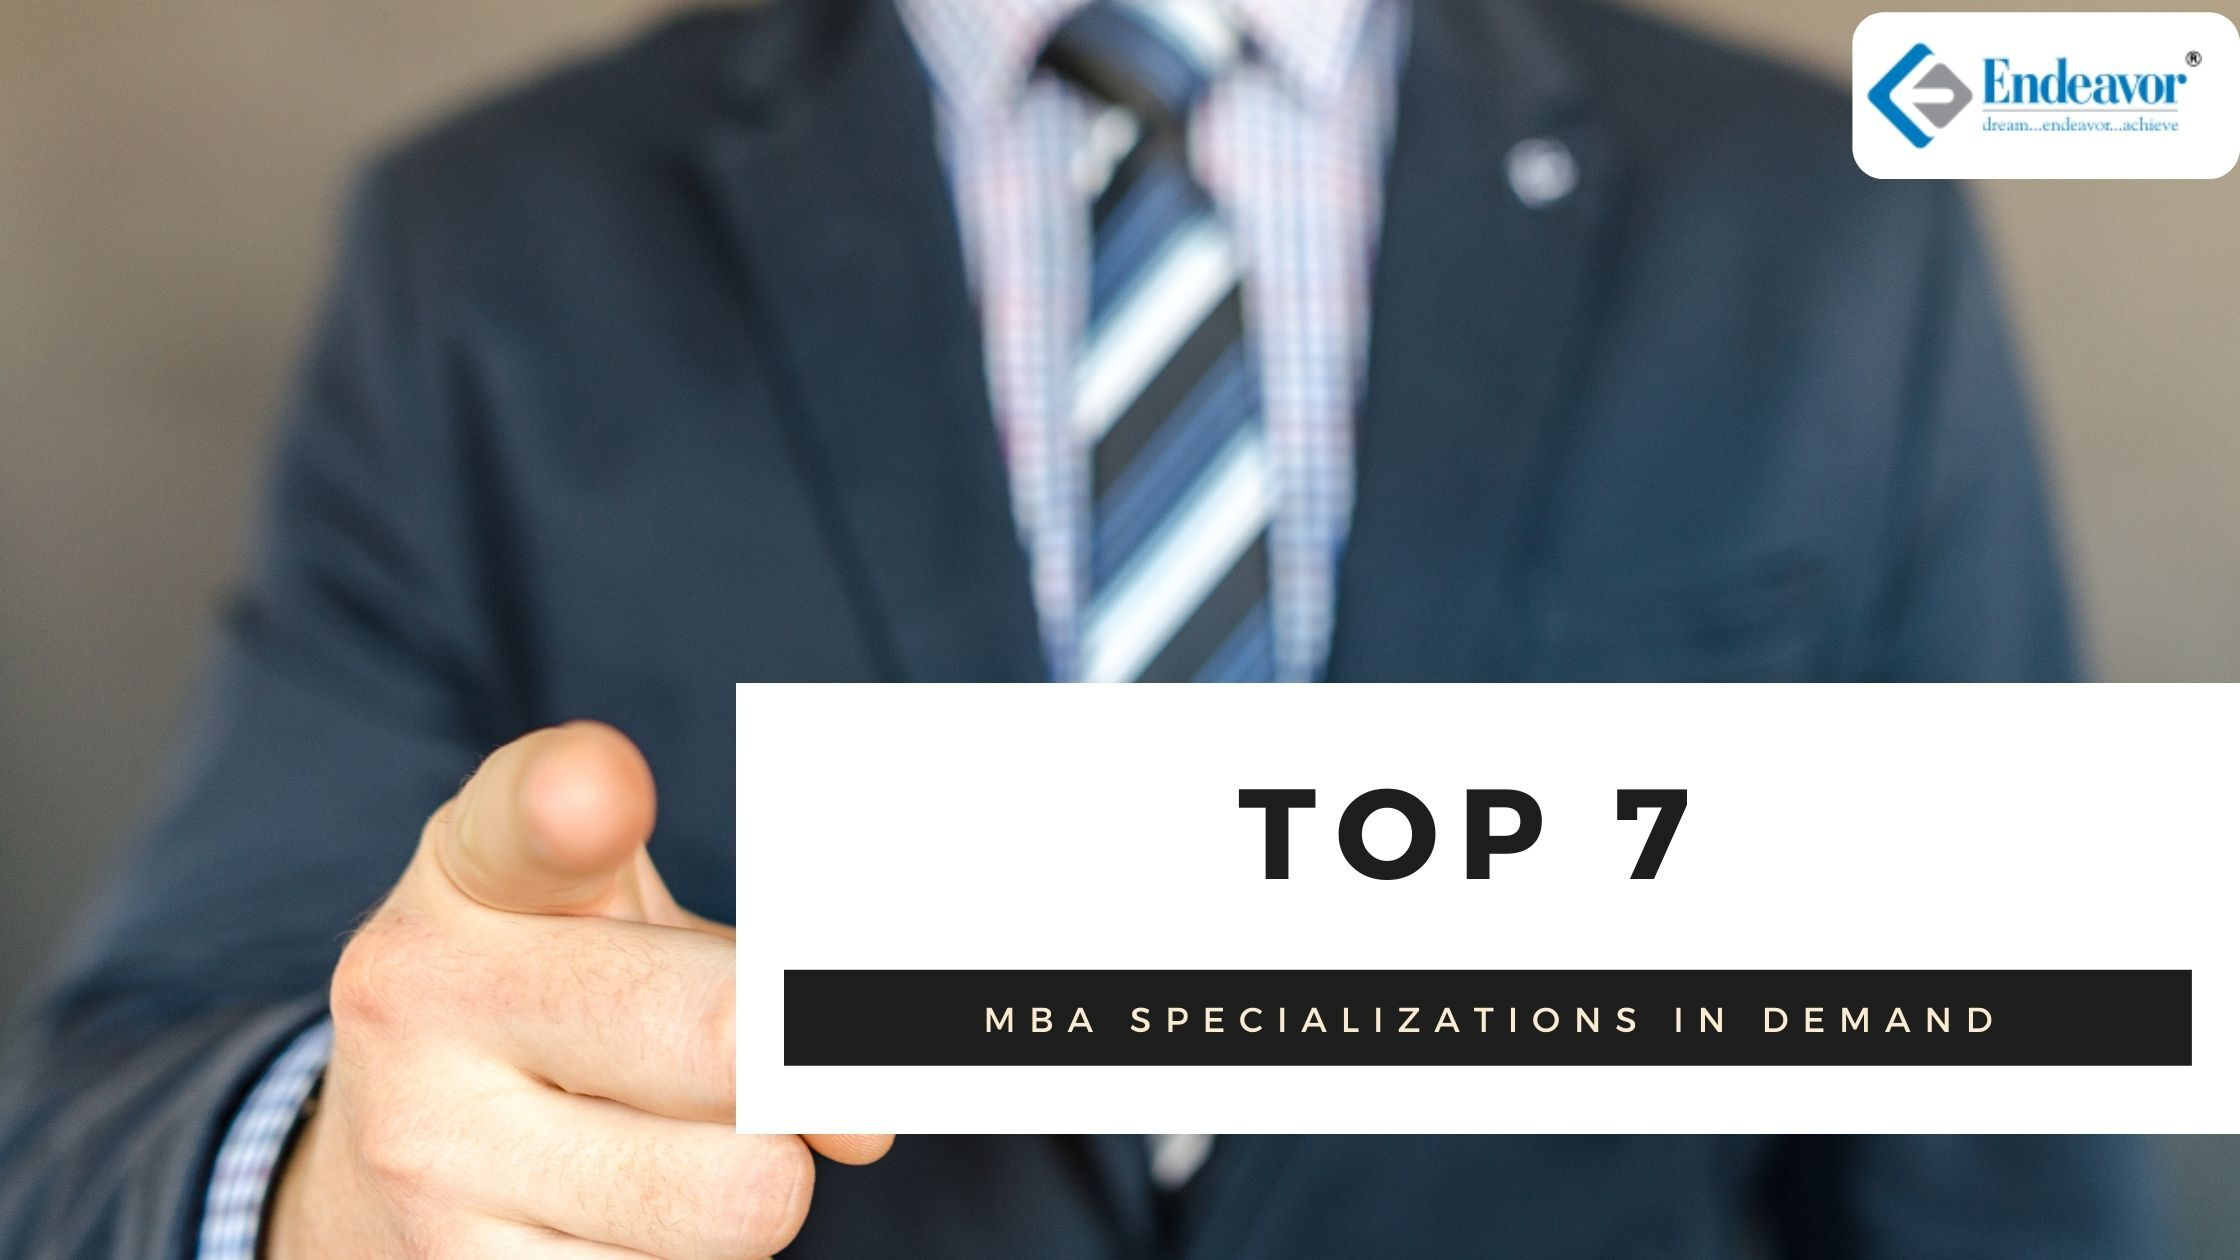 Top 7 MBA specialization in demand